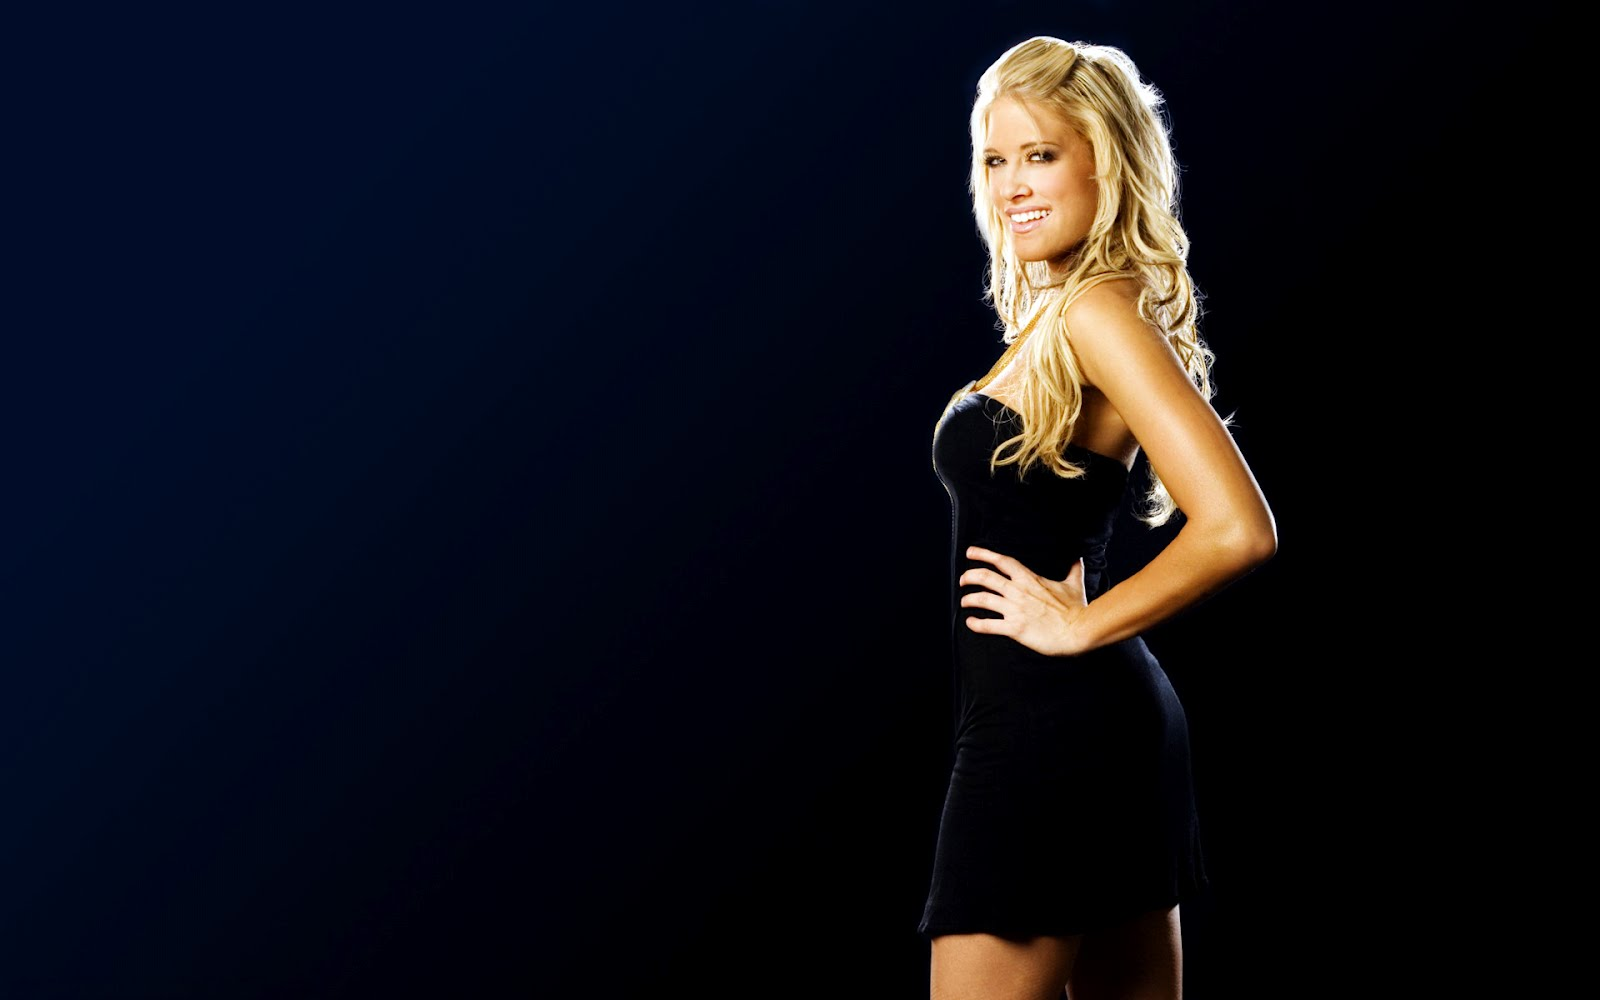 Wwe hd divas wallpapers wallpapersafari - Wwe divas wallpapers ...